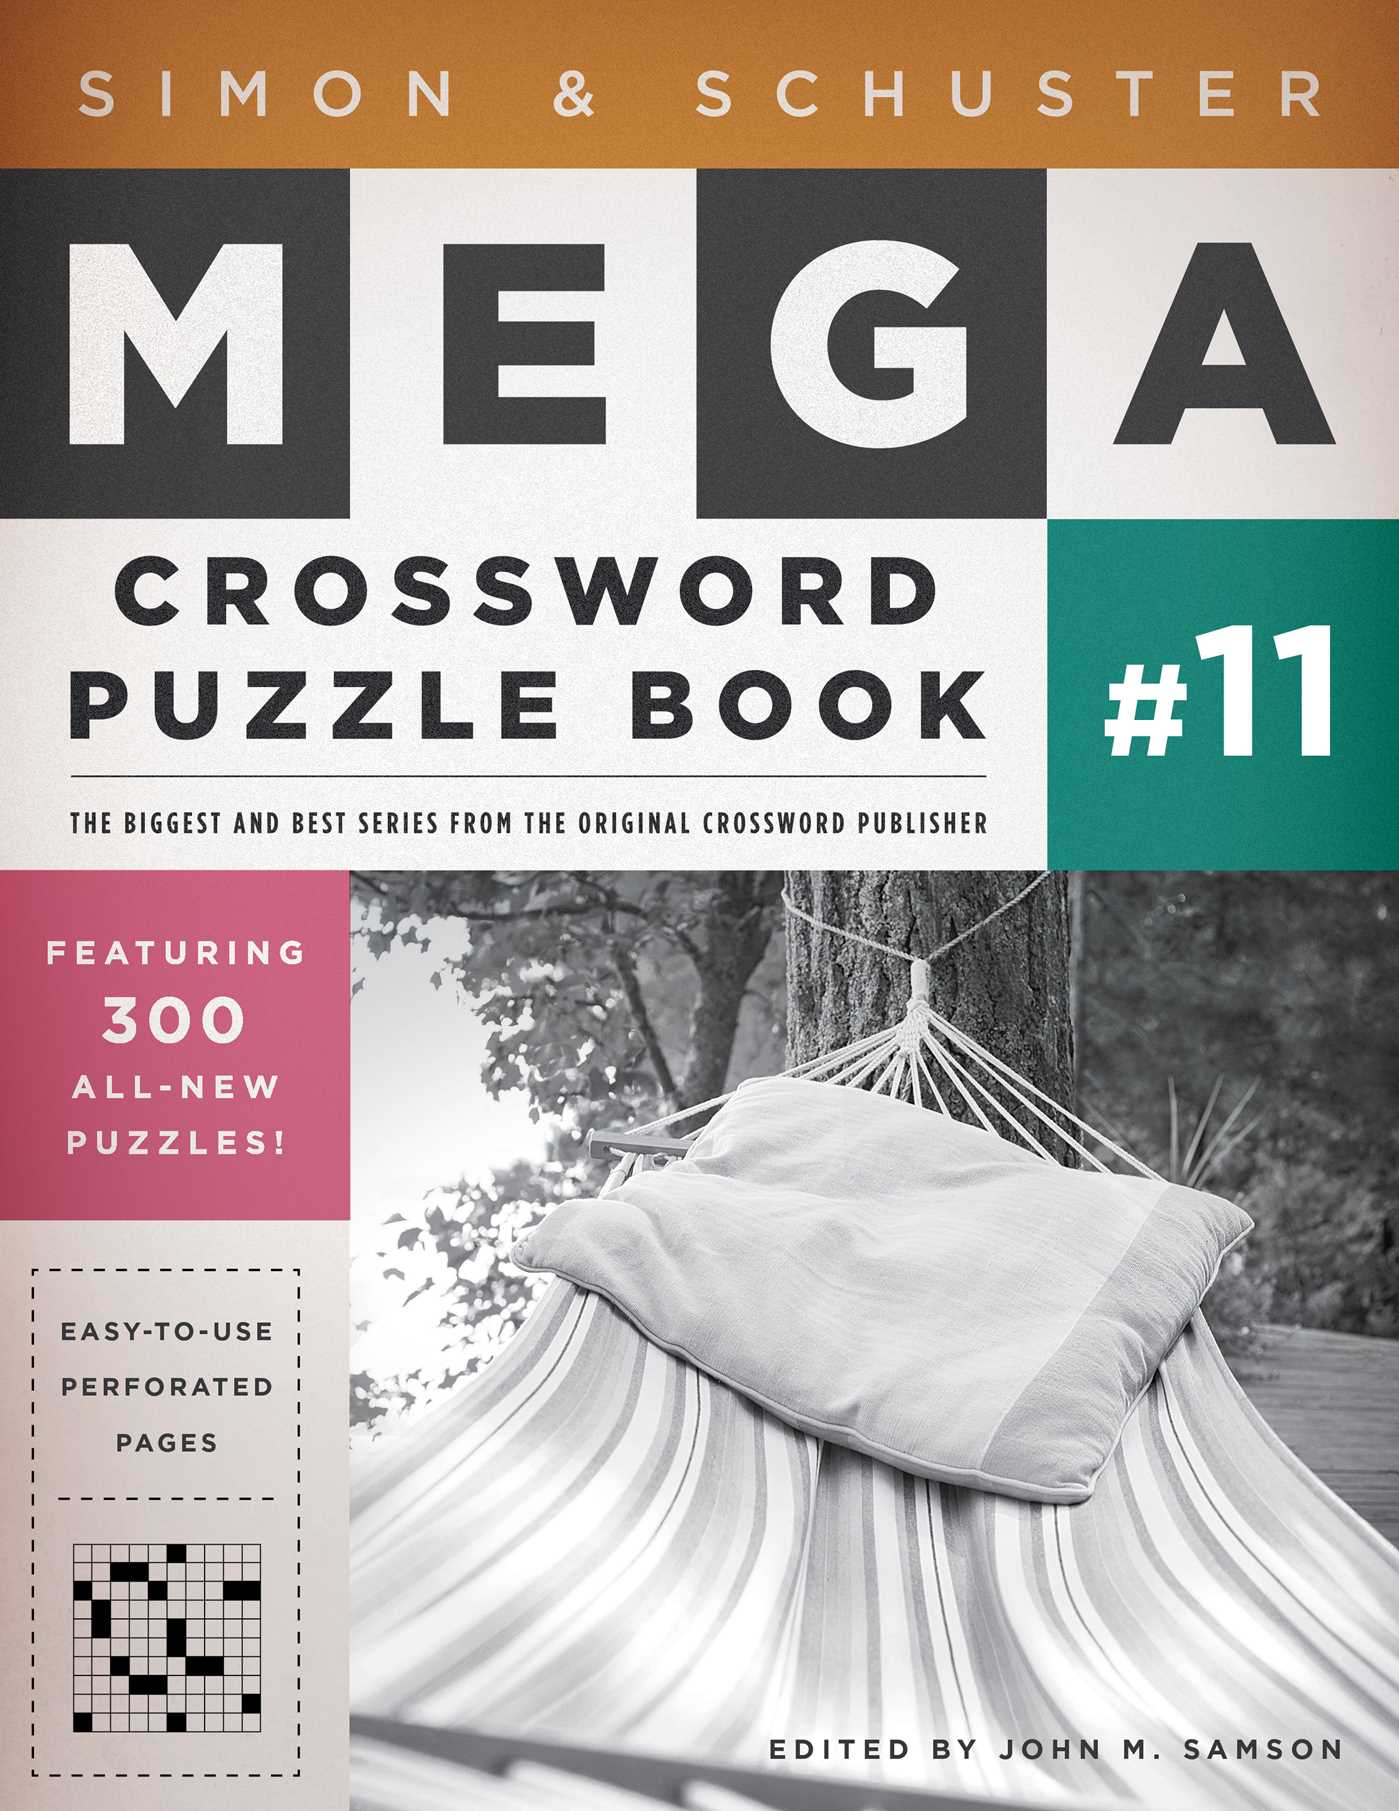 Simon-schuster-mega-crossword-puzzle-book-11-9781451627398_hr